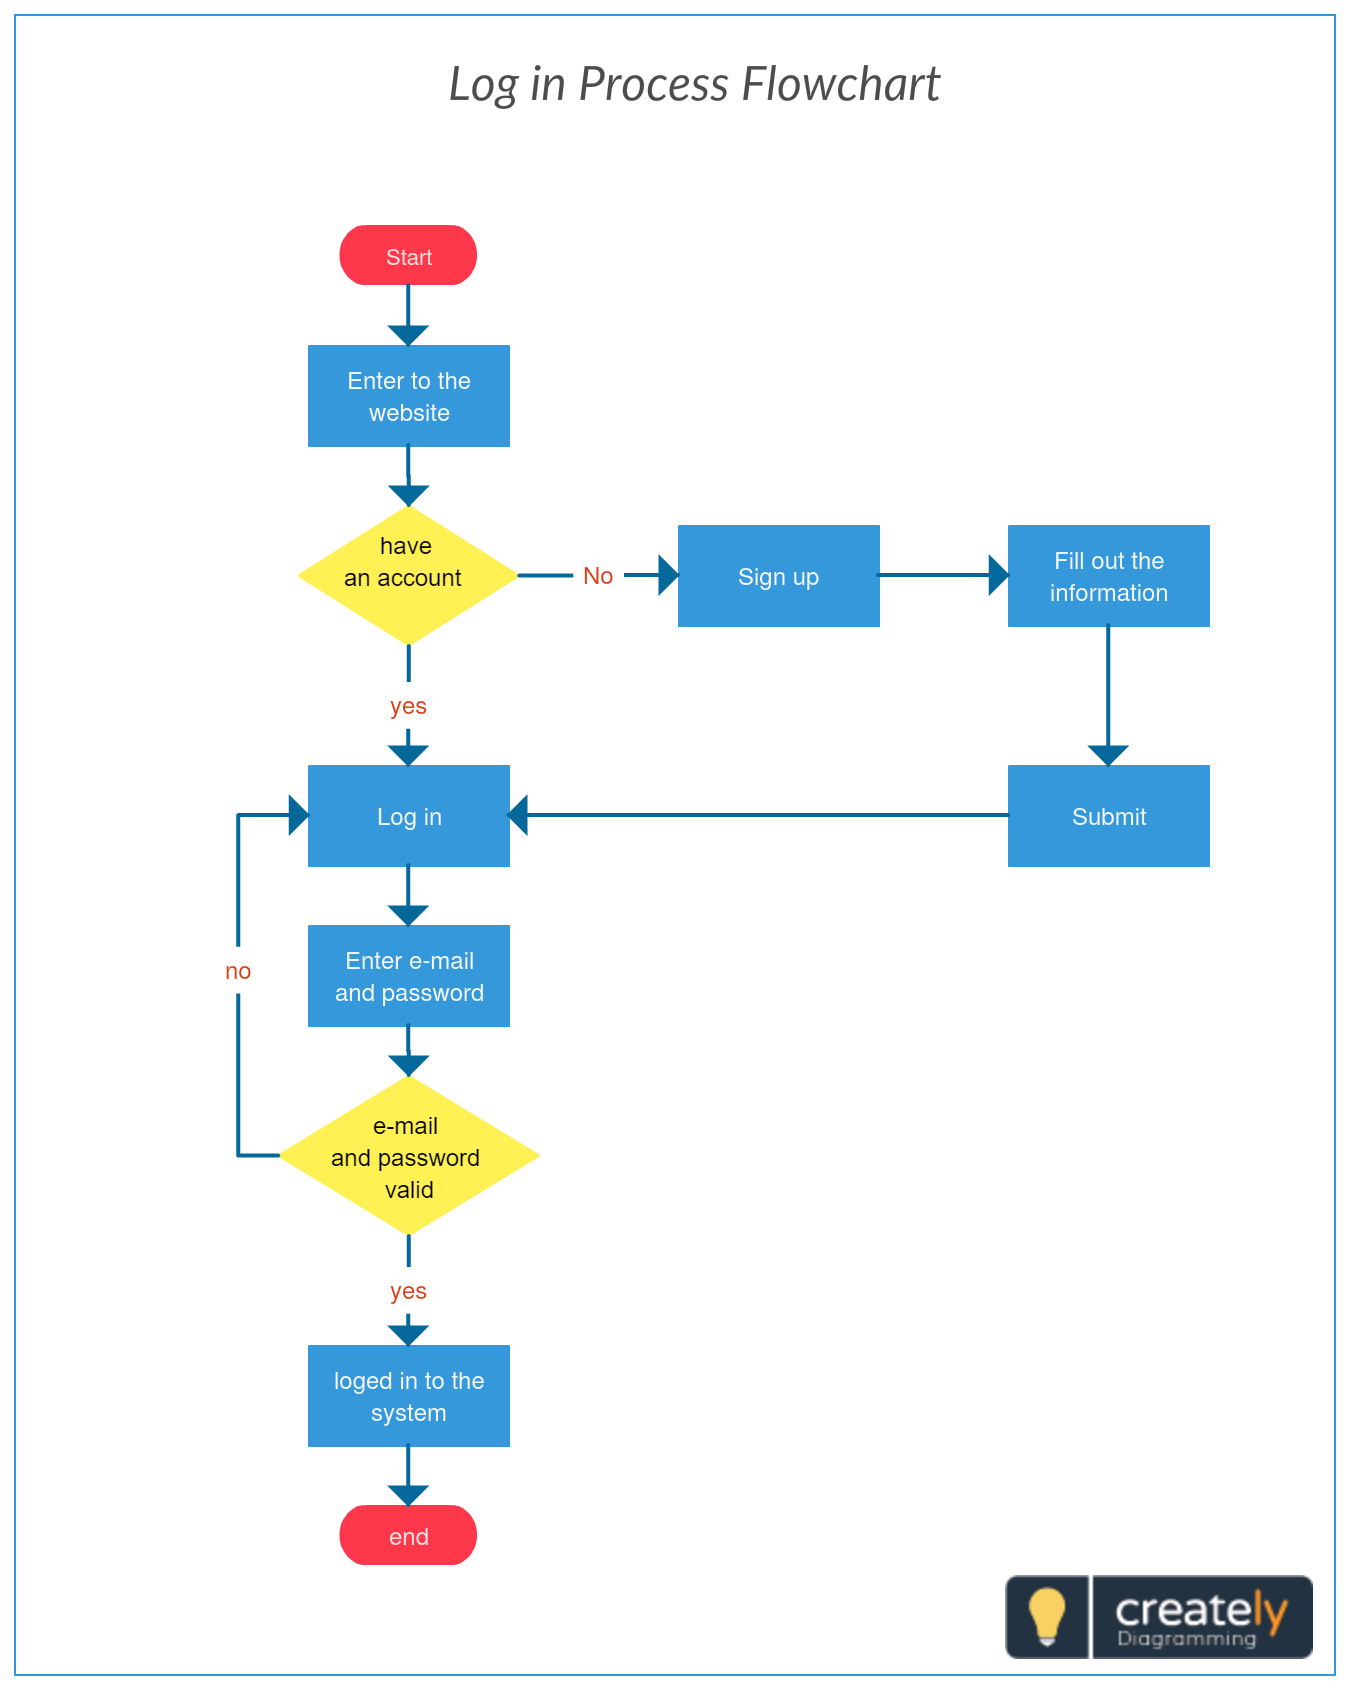 Process Workflow Diagram Login Not Lossing Wiring Flow Examples Log In Flowchart To Plan On Any System You Can Use This Rh Pinterest Com Business Shapes